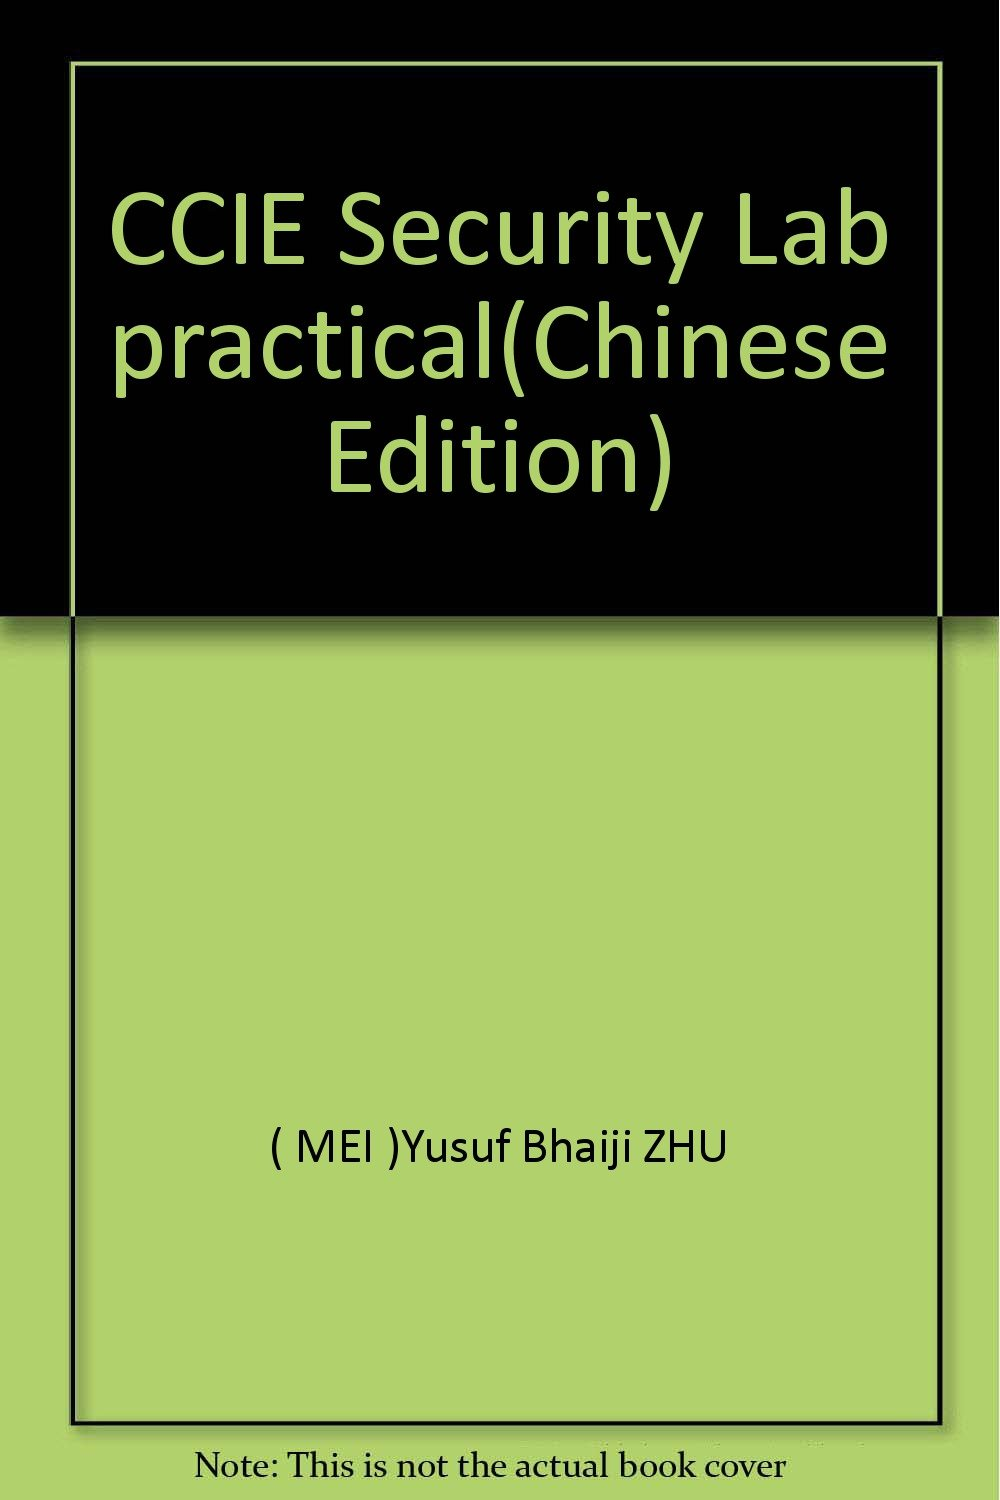 CCIE Security Lab practical(Chinese Edition): Amazon co uk